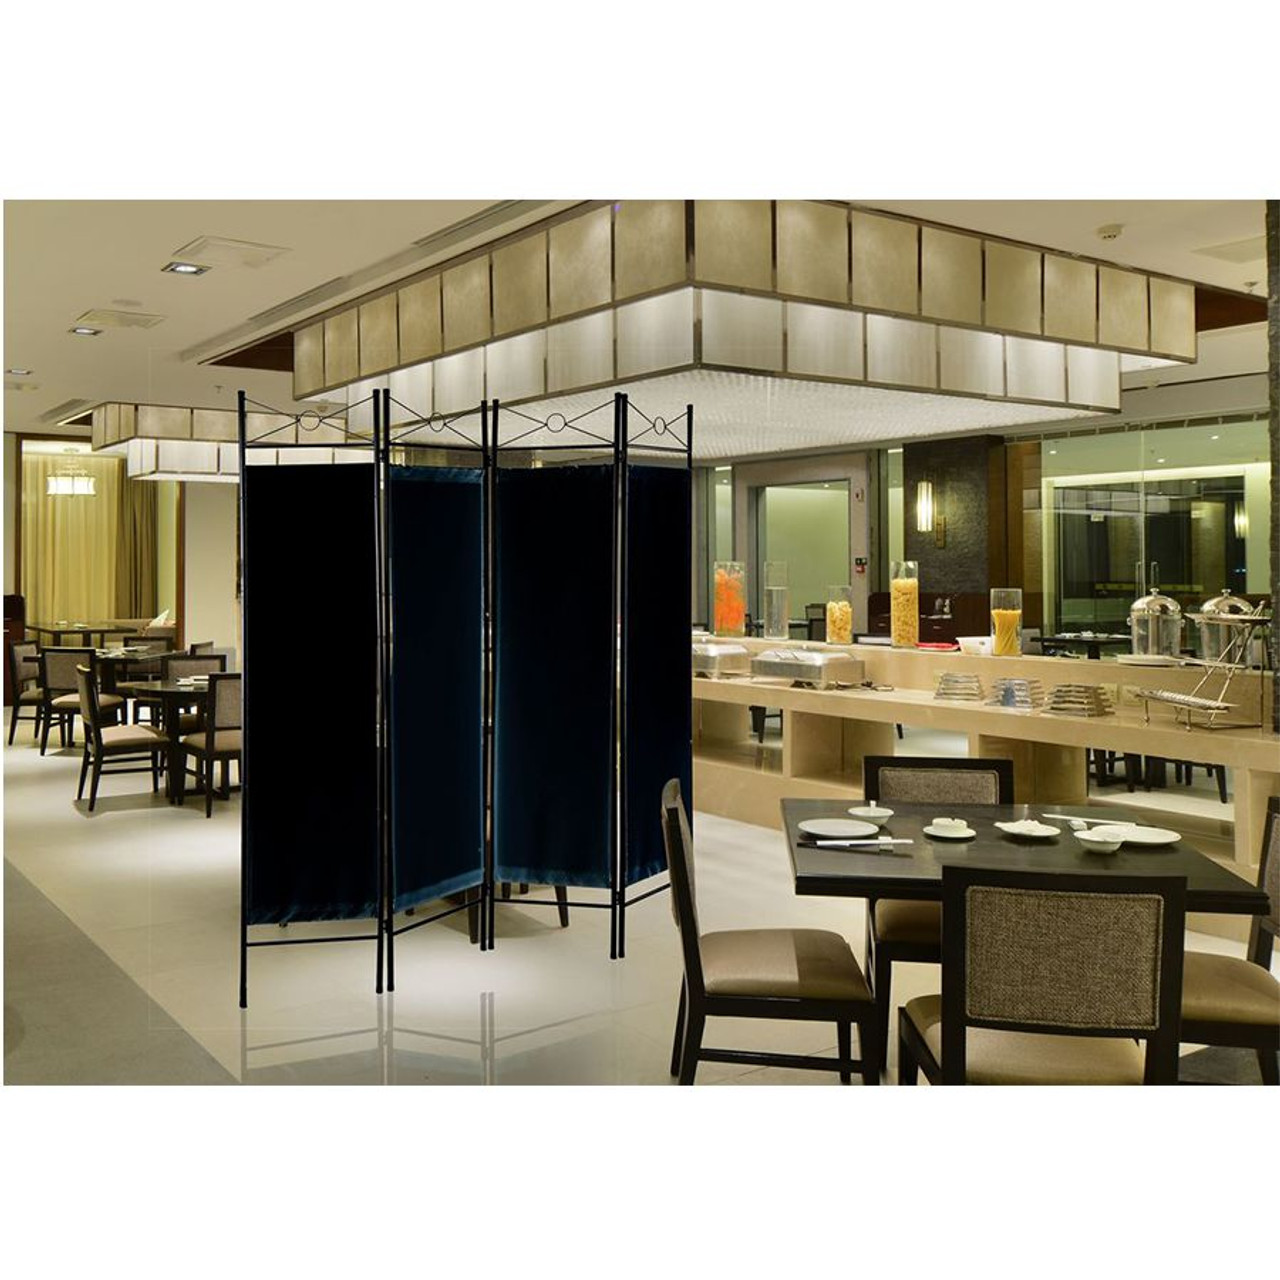 Metal Room Divider Privacy Screen with Removable Fabric  Black Color